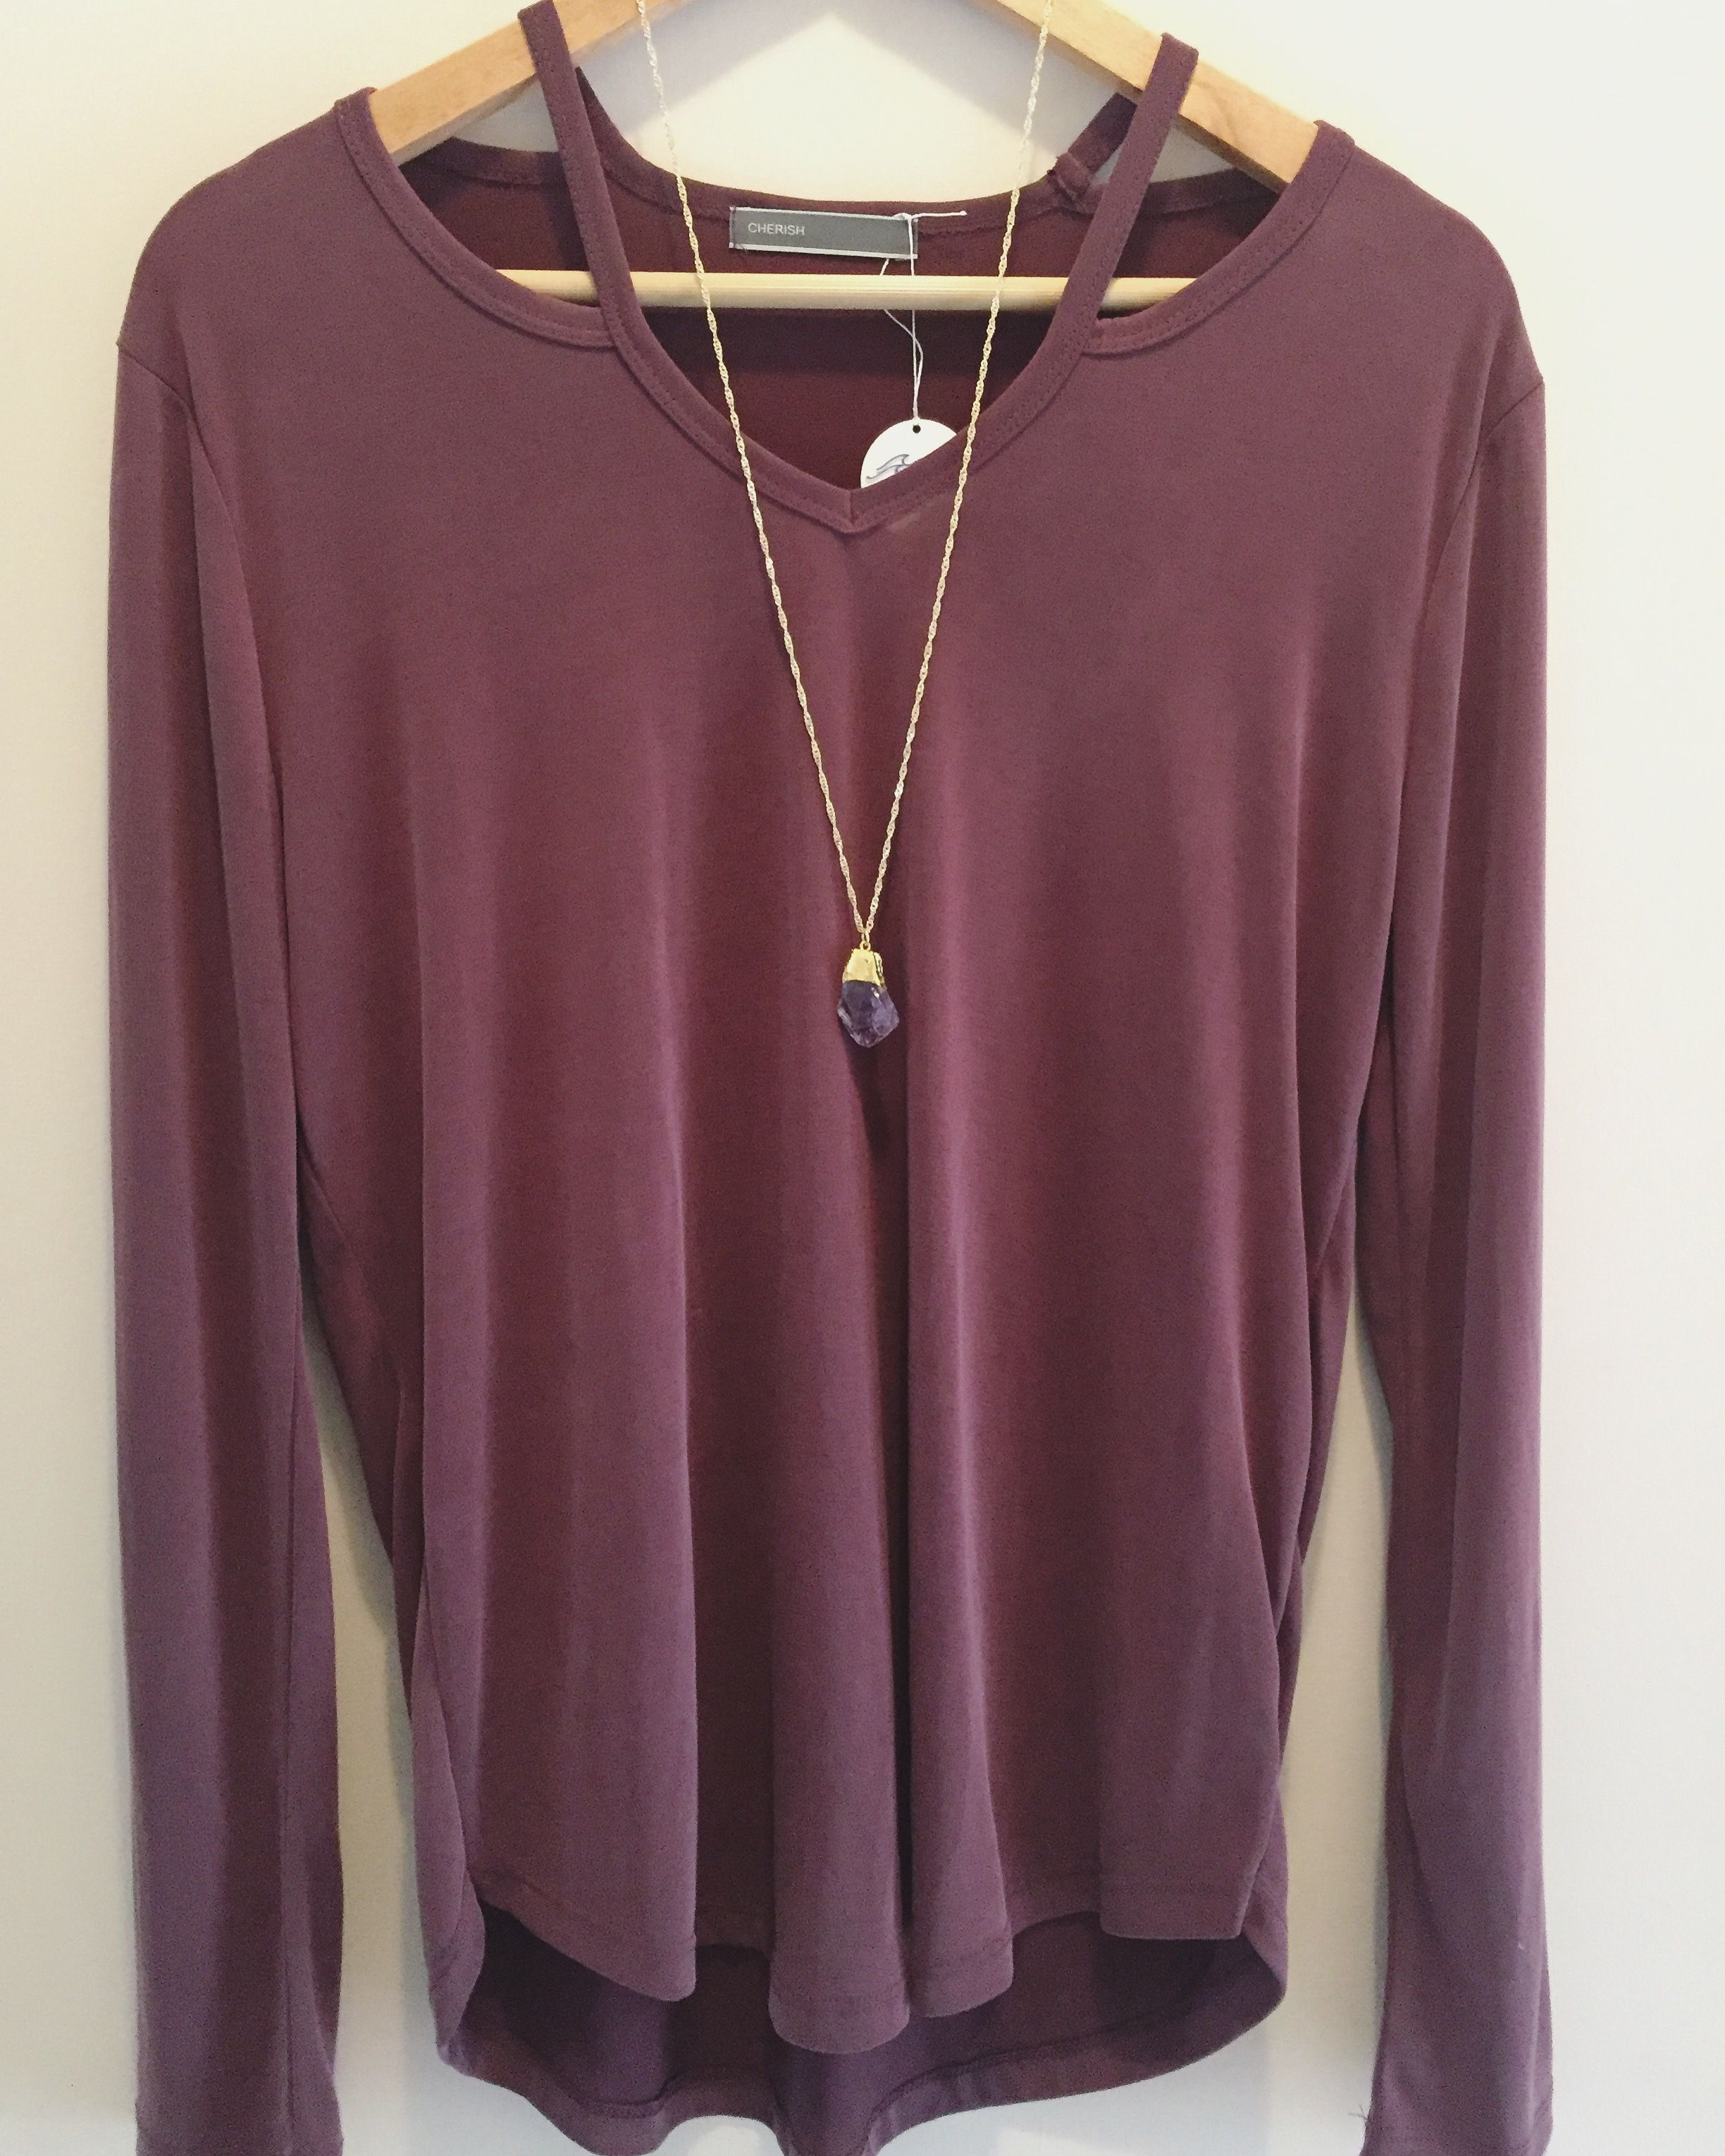 Vintage Burgundy Ruby Jabot Blouse Wine Color Elegant San Andre Preppy Blouse Size Xs S In 2020 Blouse Blouse Size Preppy